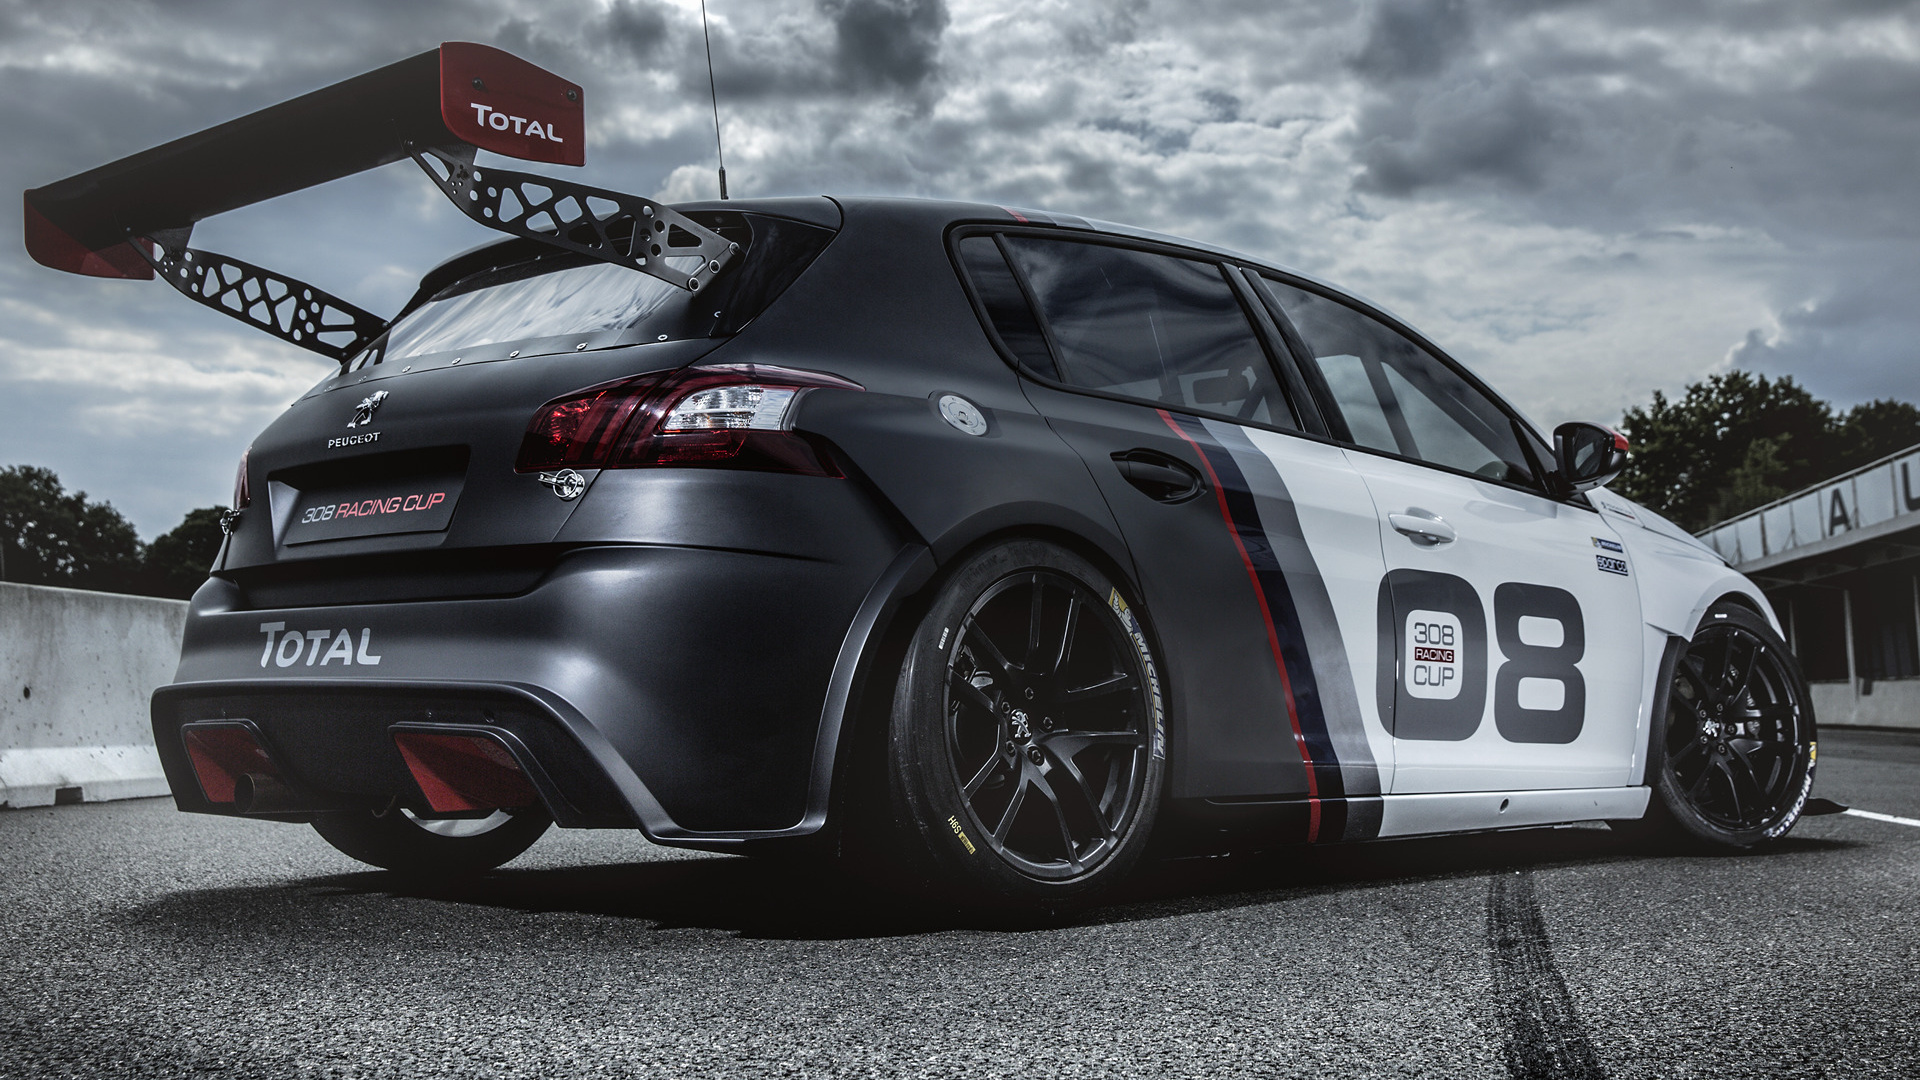 2016 peugeot 308 racing cup wallpapers and hd images car pixel. Black Bedroom Furniture Sets. Home Design Ideas